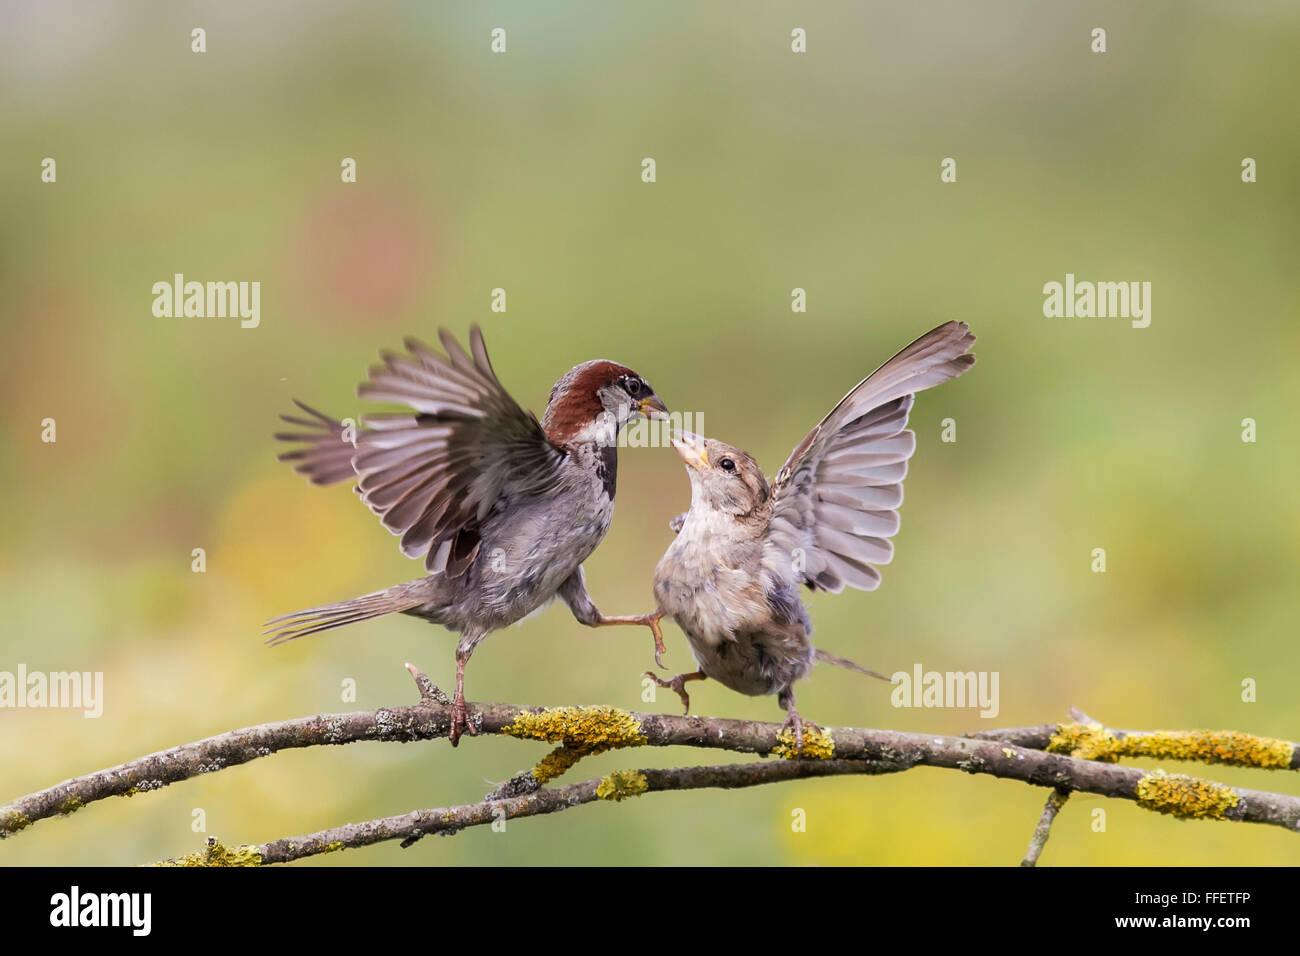 two birds pair sparrows fight brawl males spring tree branch spread its wings feathers beaks feet - Stock Image